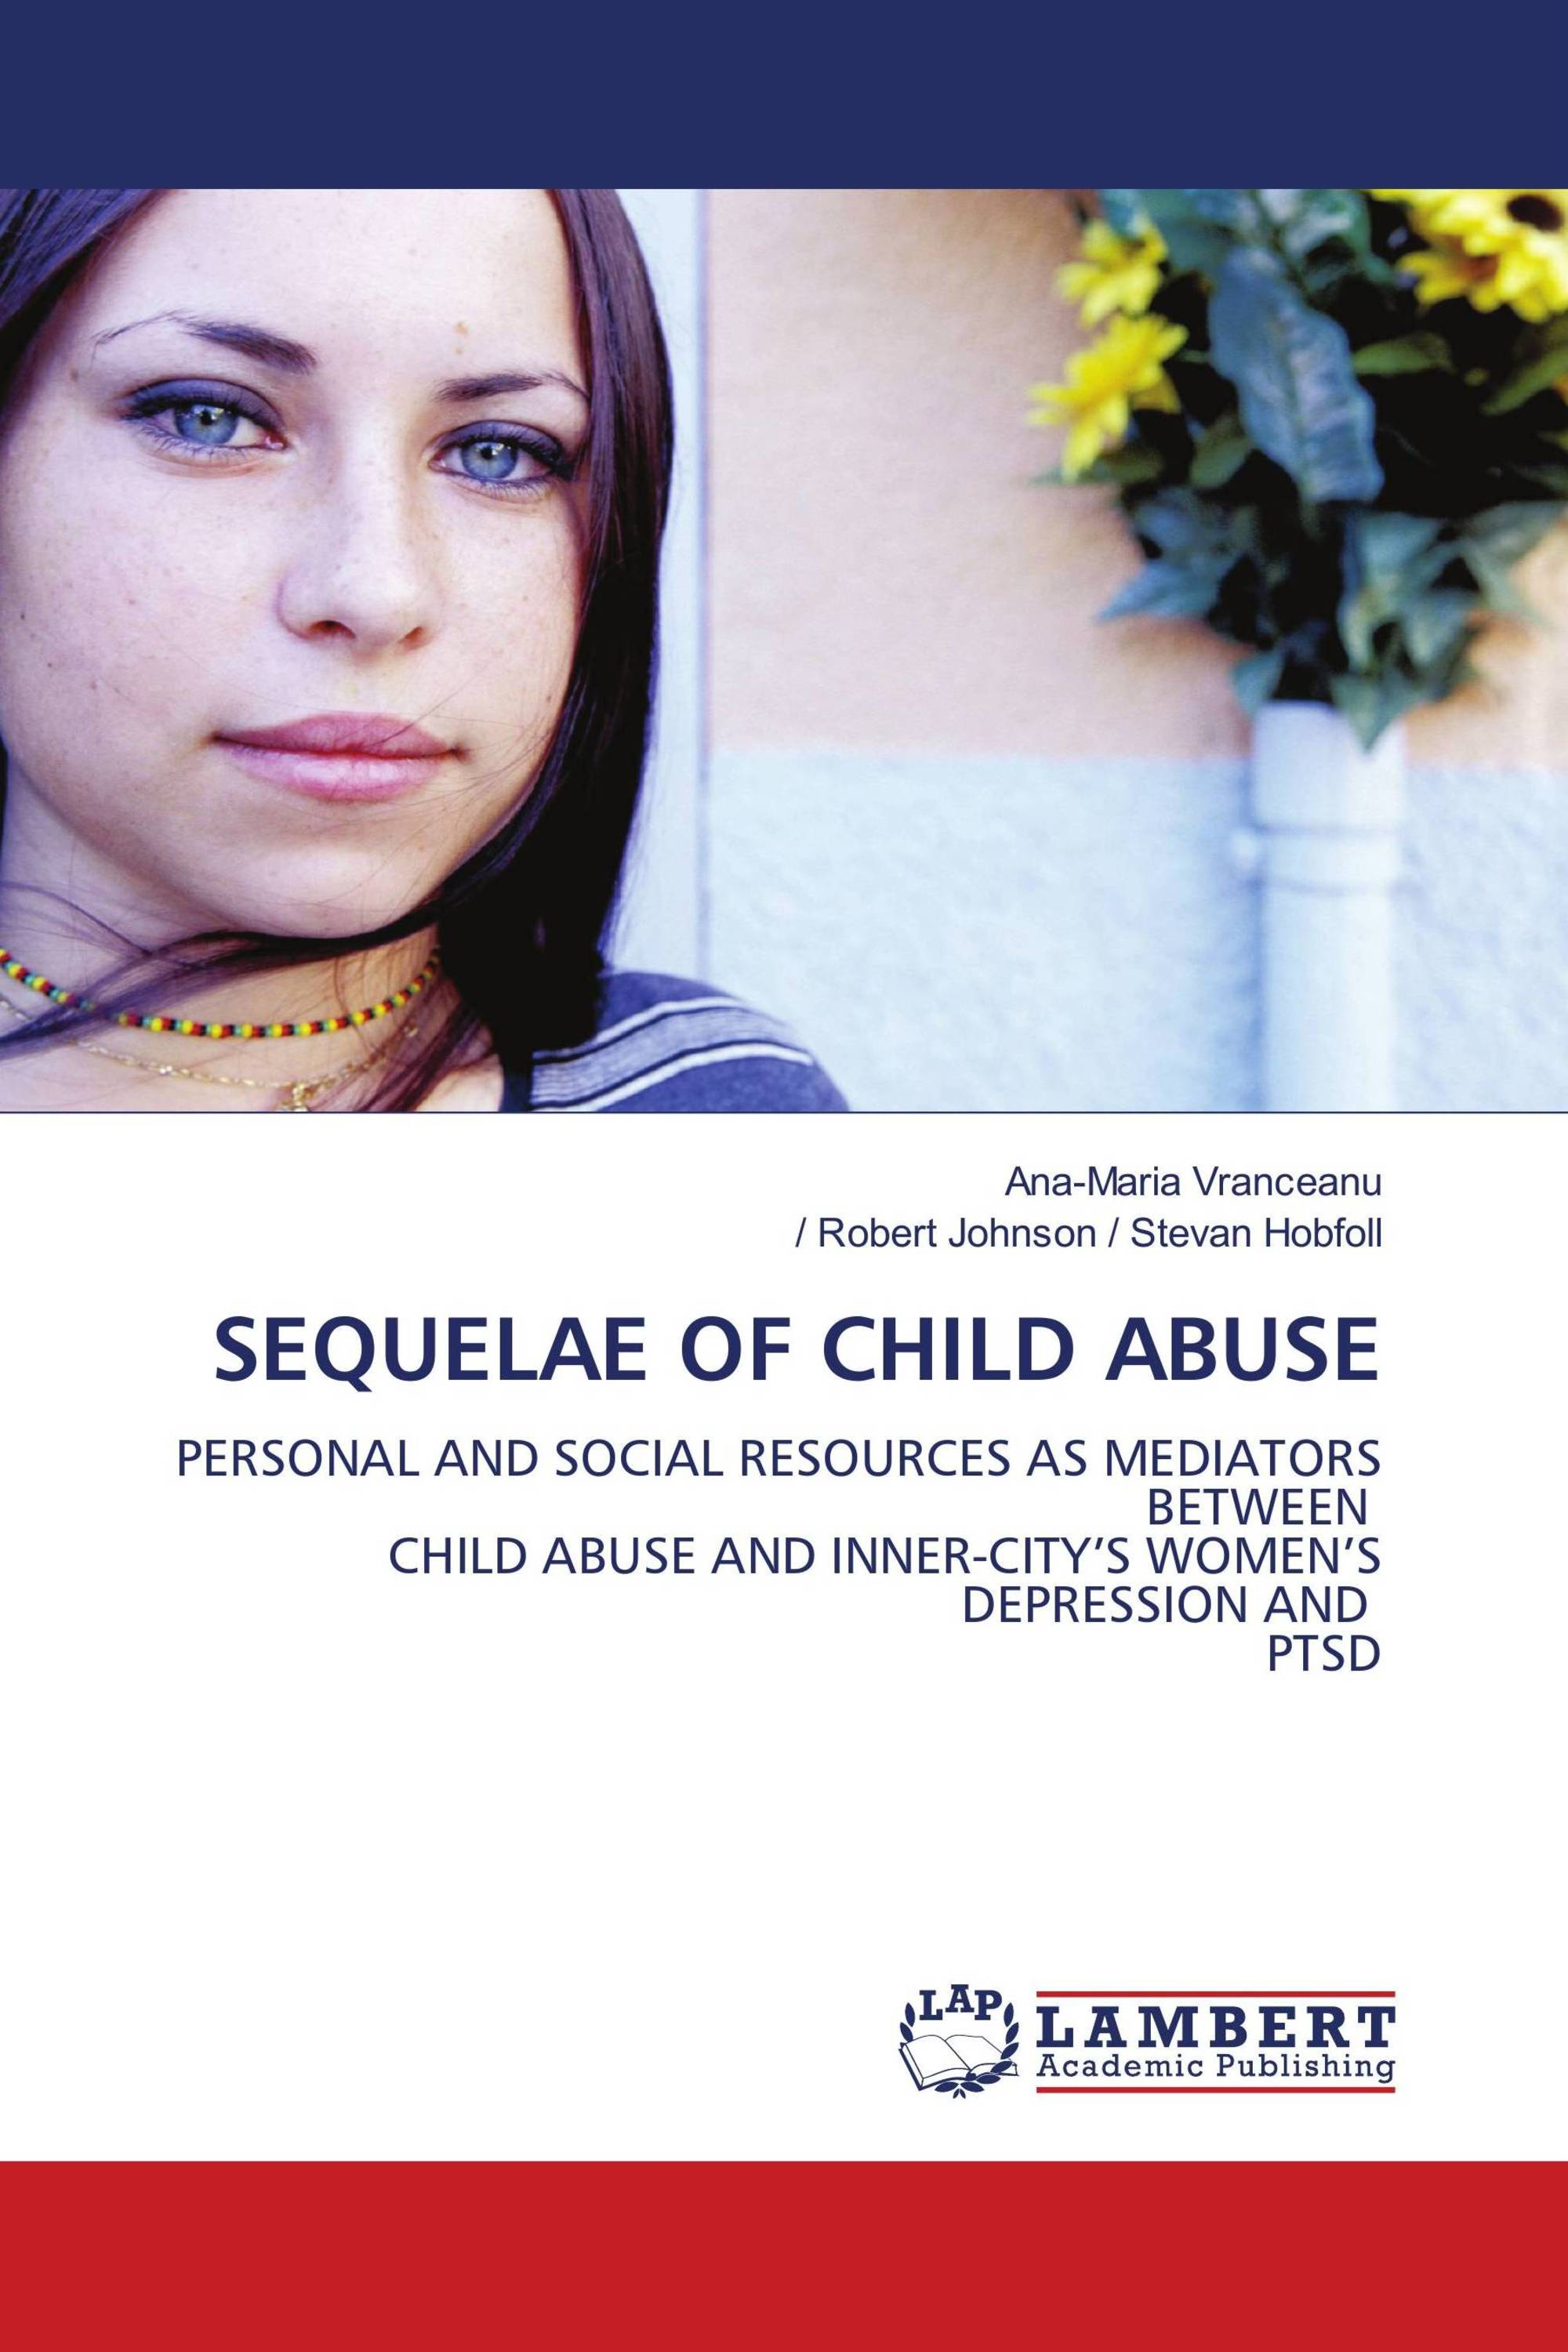 SEQUELAE OF CHILD ABUSE